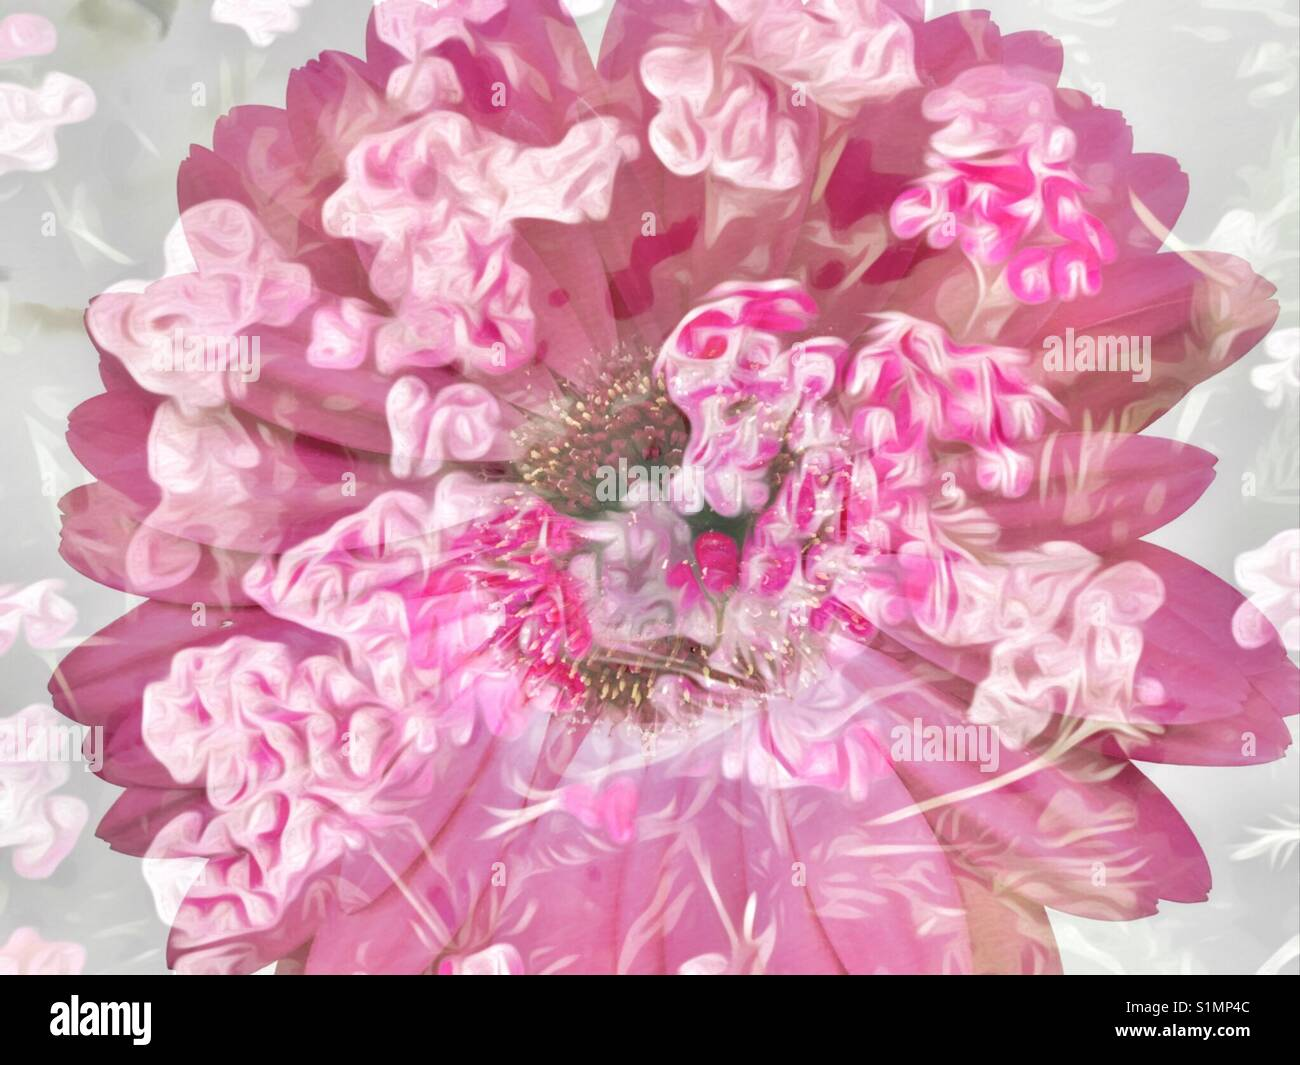 Two flower images blended to make beautiful abstract vintage look - Stock Image